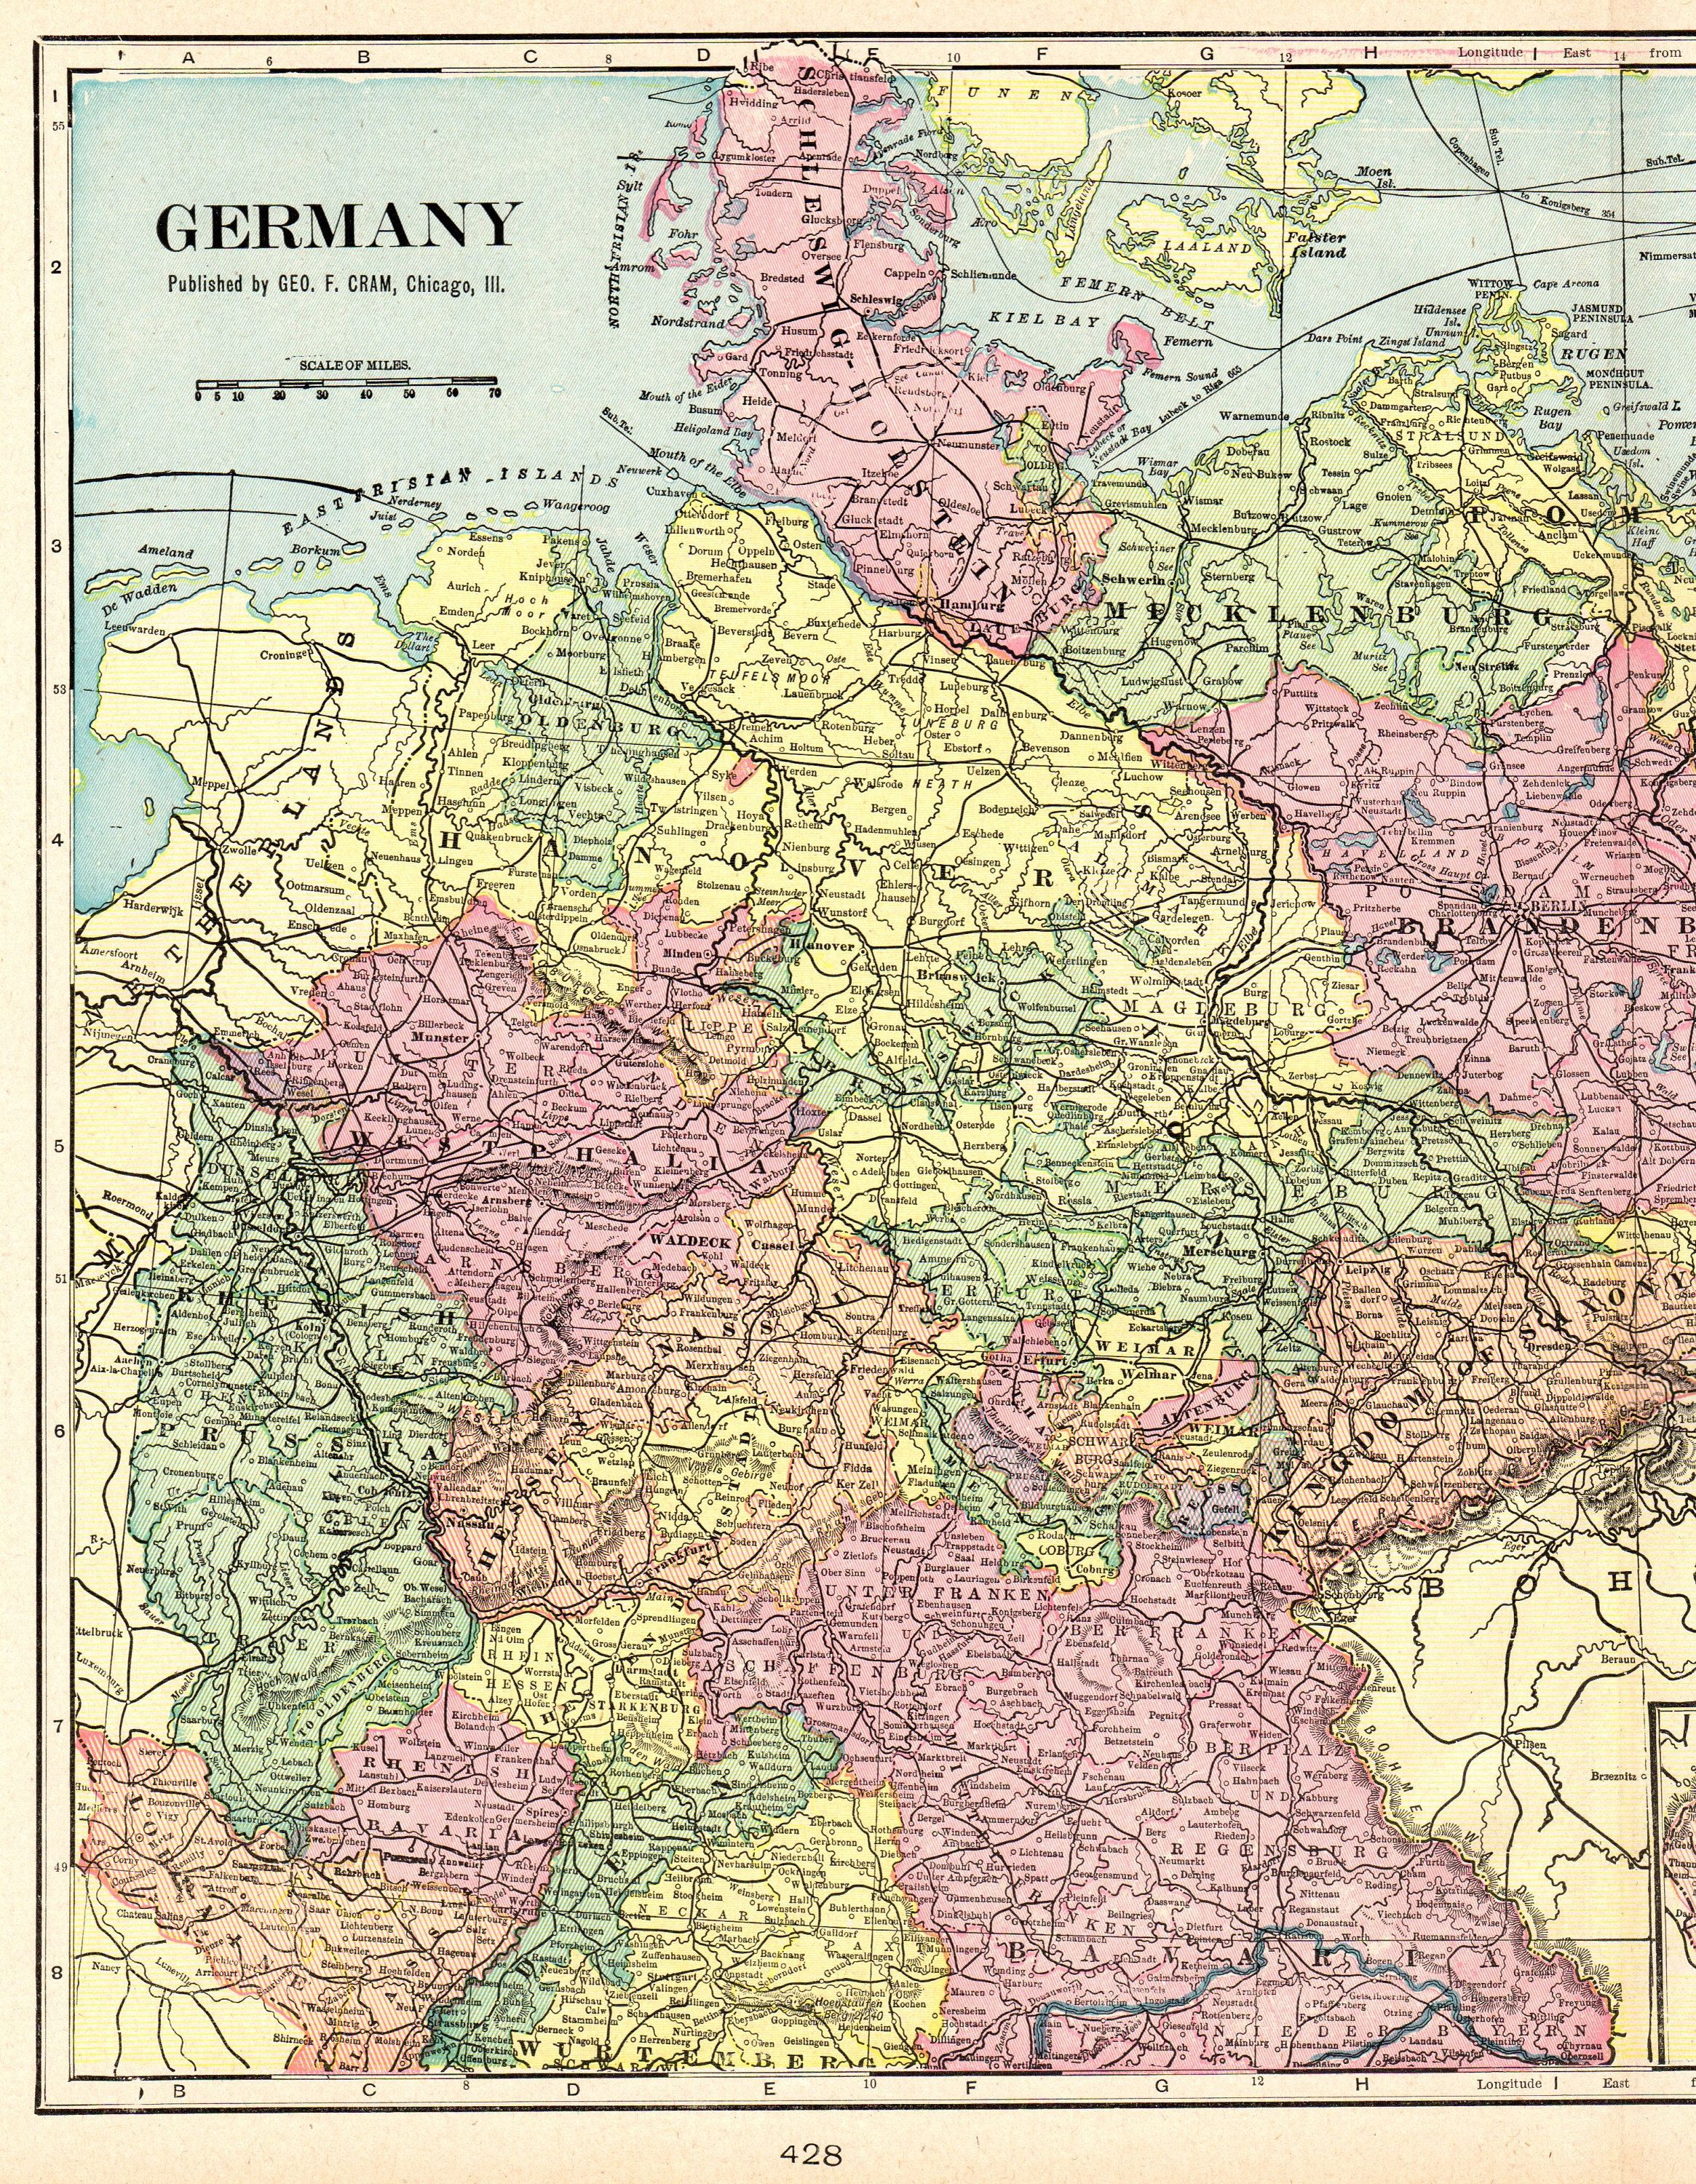 1901 Antique GERMANY Map Vintage Map of Germany Gallery Wall Art ...